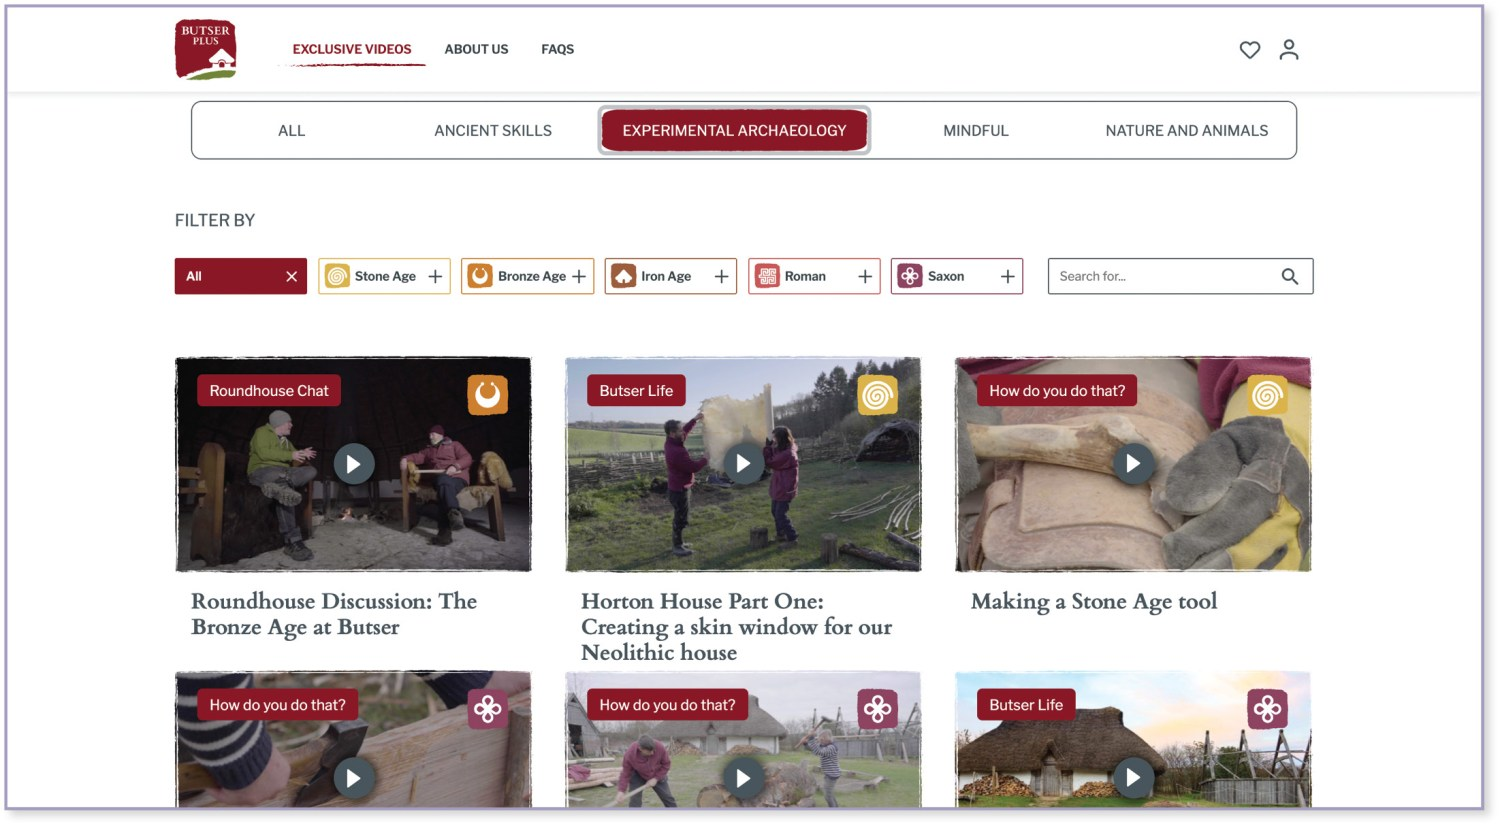 ABOVE A screenshot showing some of the exclusive videos available to subscribers to Butser Plus, the Farm's new virtual platform to share their archaeological experiments.